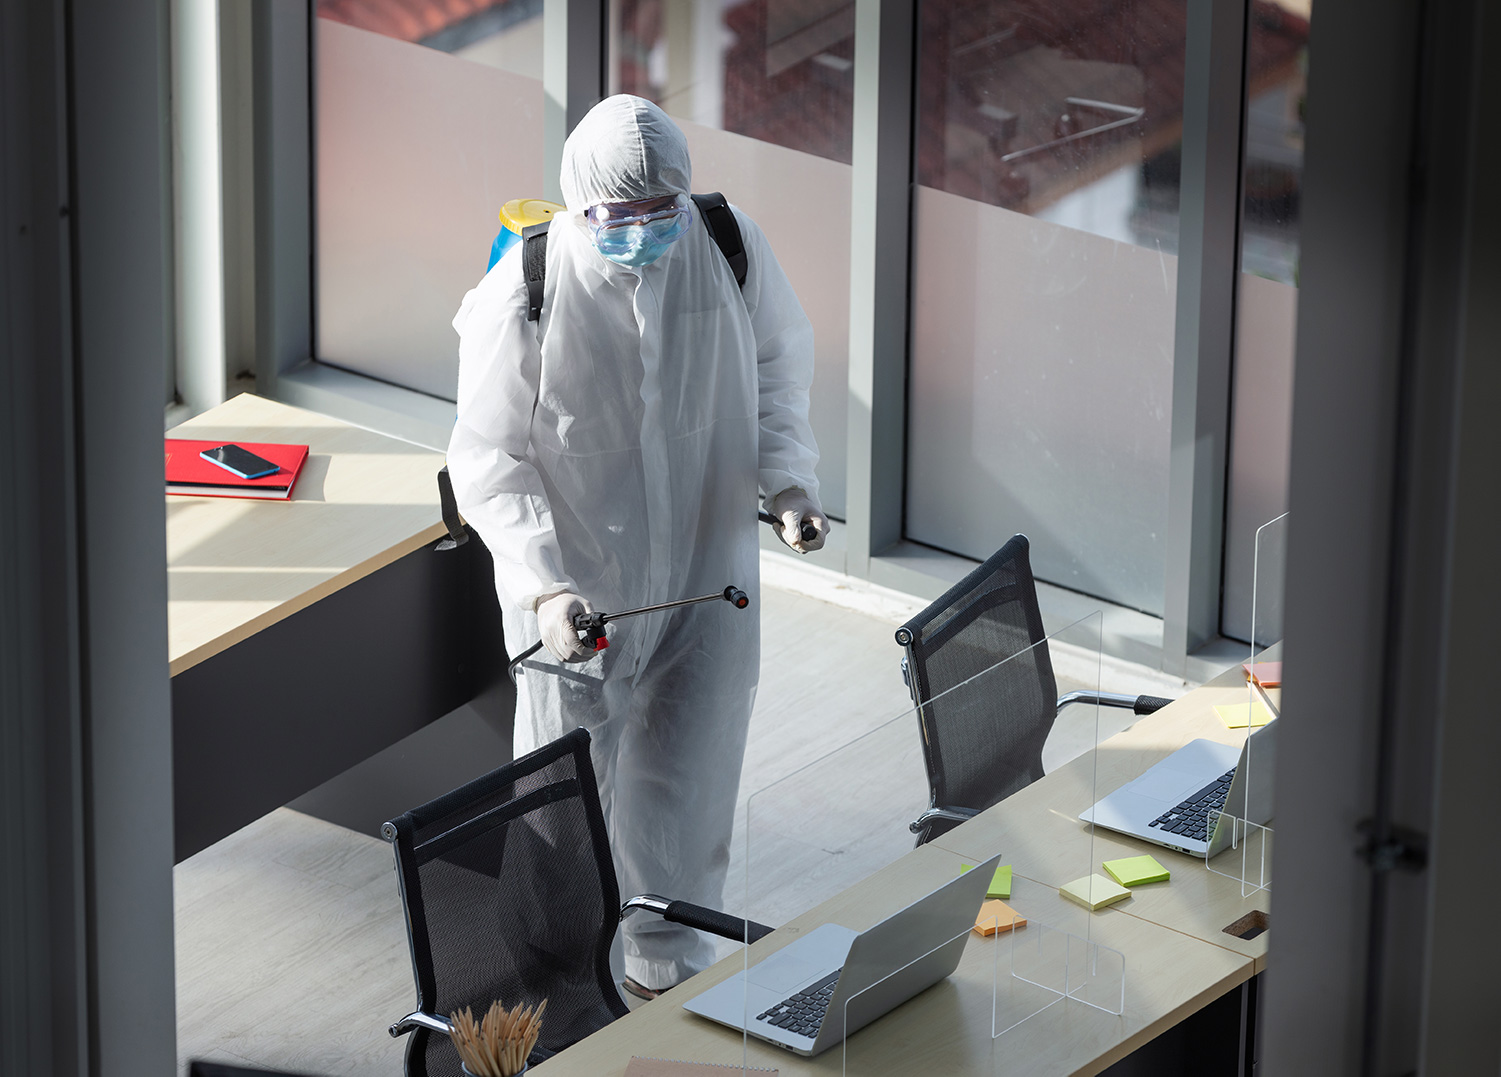 Disinfecting an office to create a covid-19 safe workplace